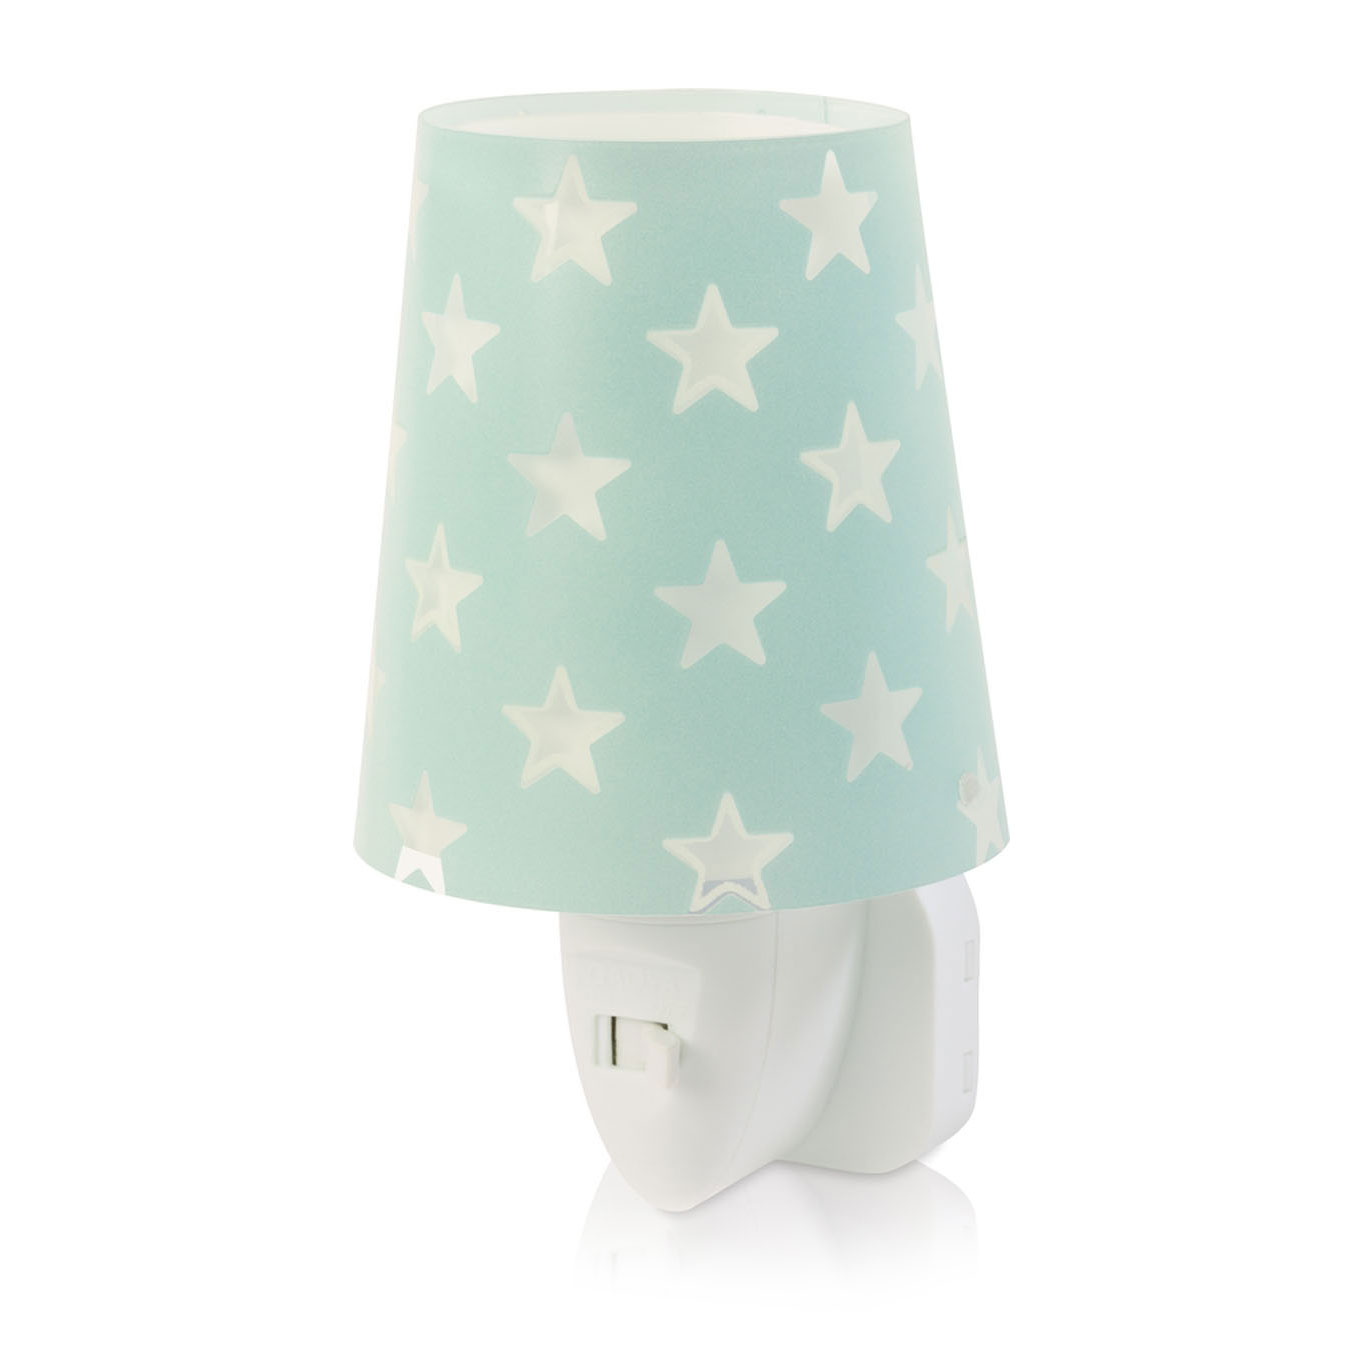 Dalber Nachtlamp LED Sterren Glow in the Dark Turqoise